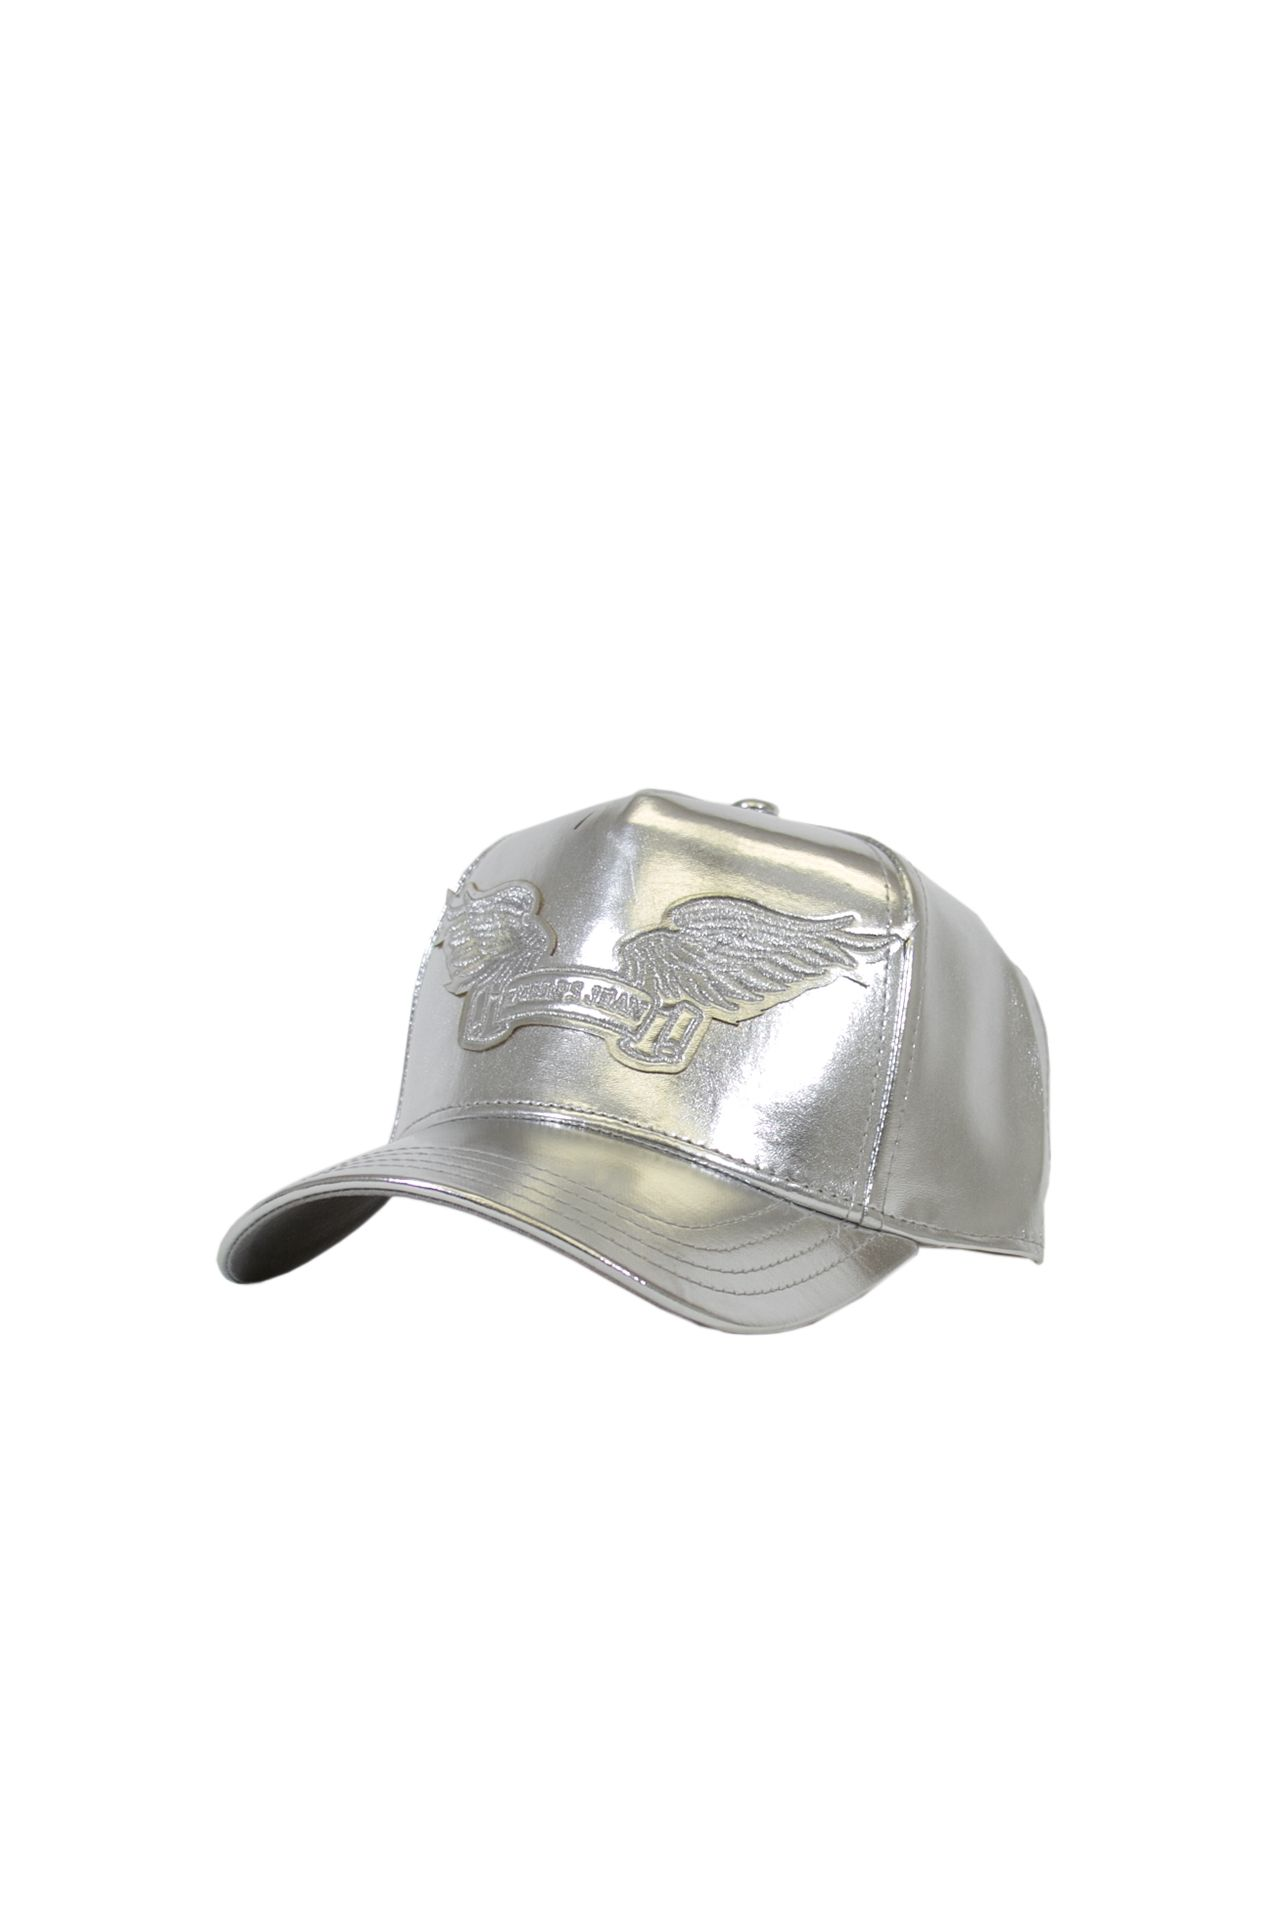 METALLIC SILVER WITH SILVER WINGS